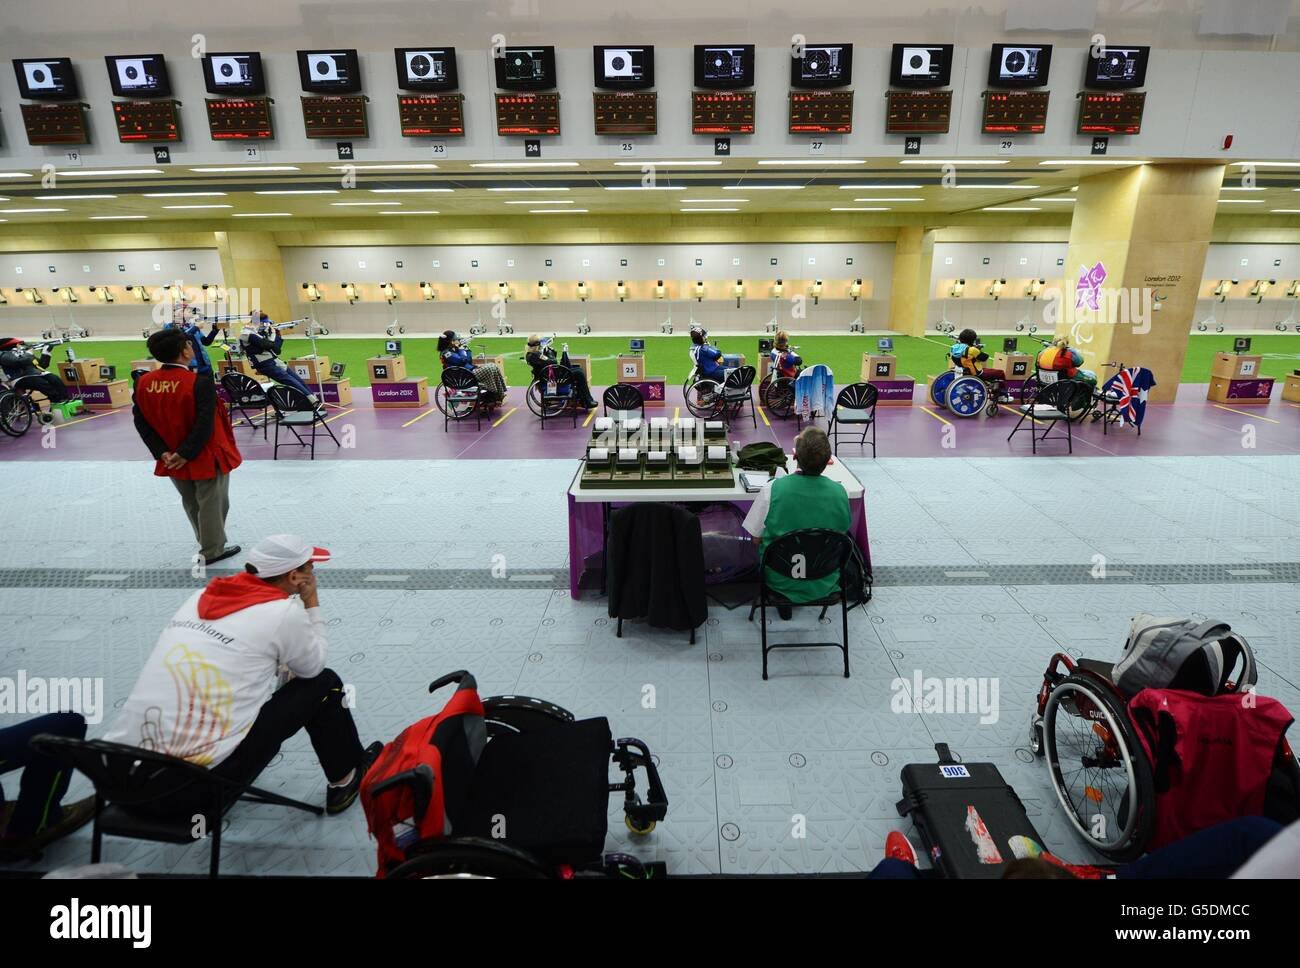 London Paralympic Games - Day 1 - Stock Image